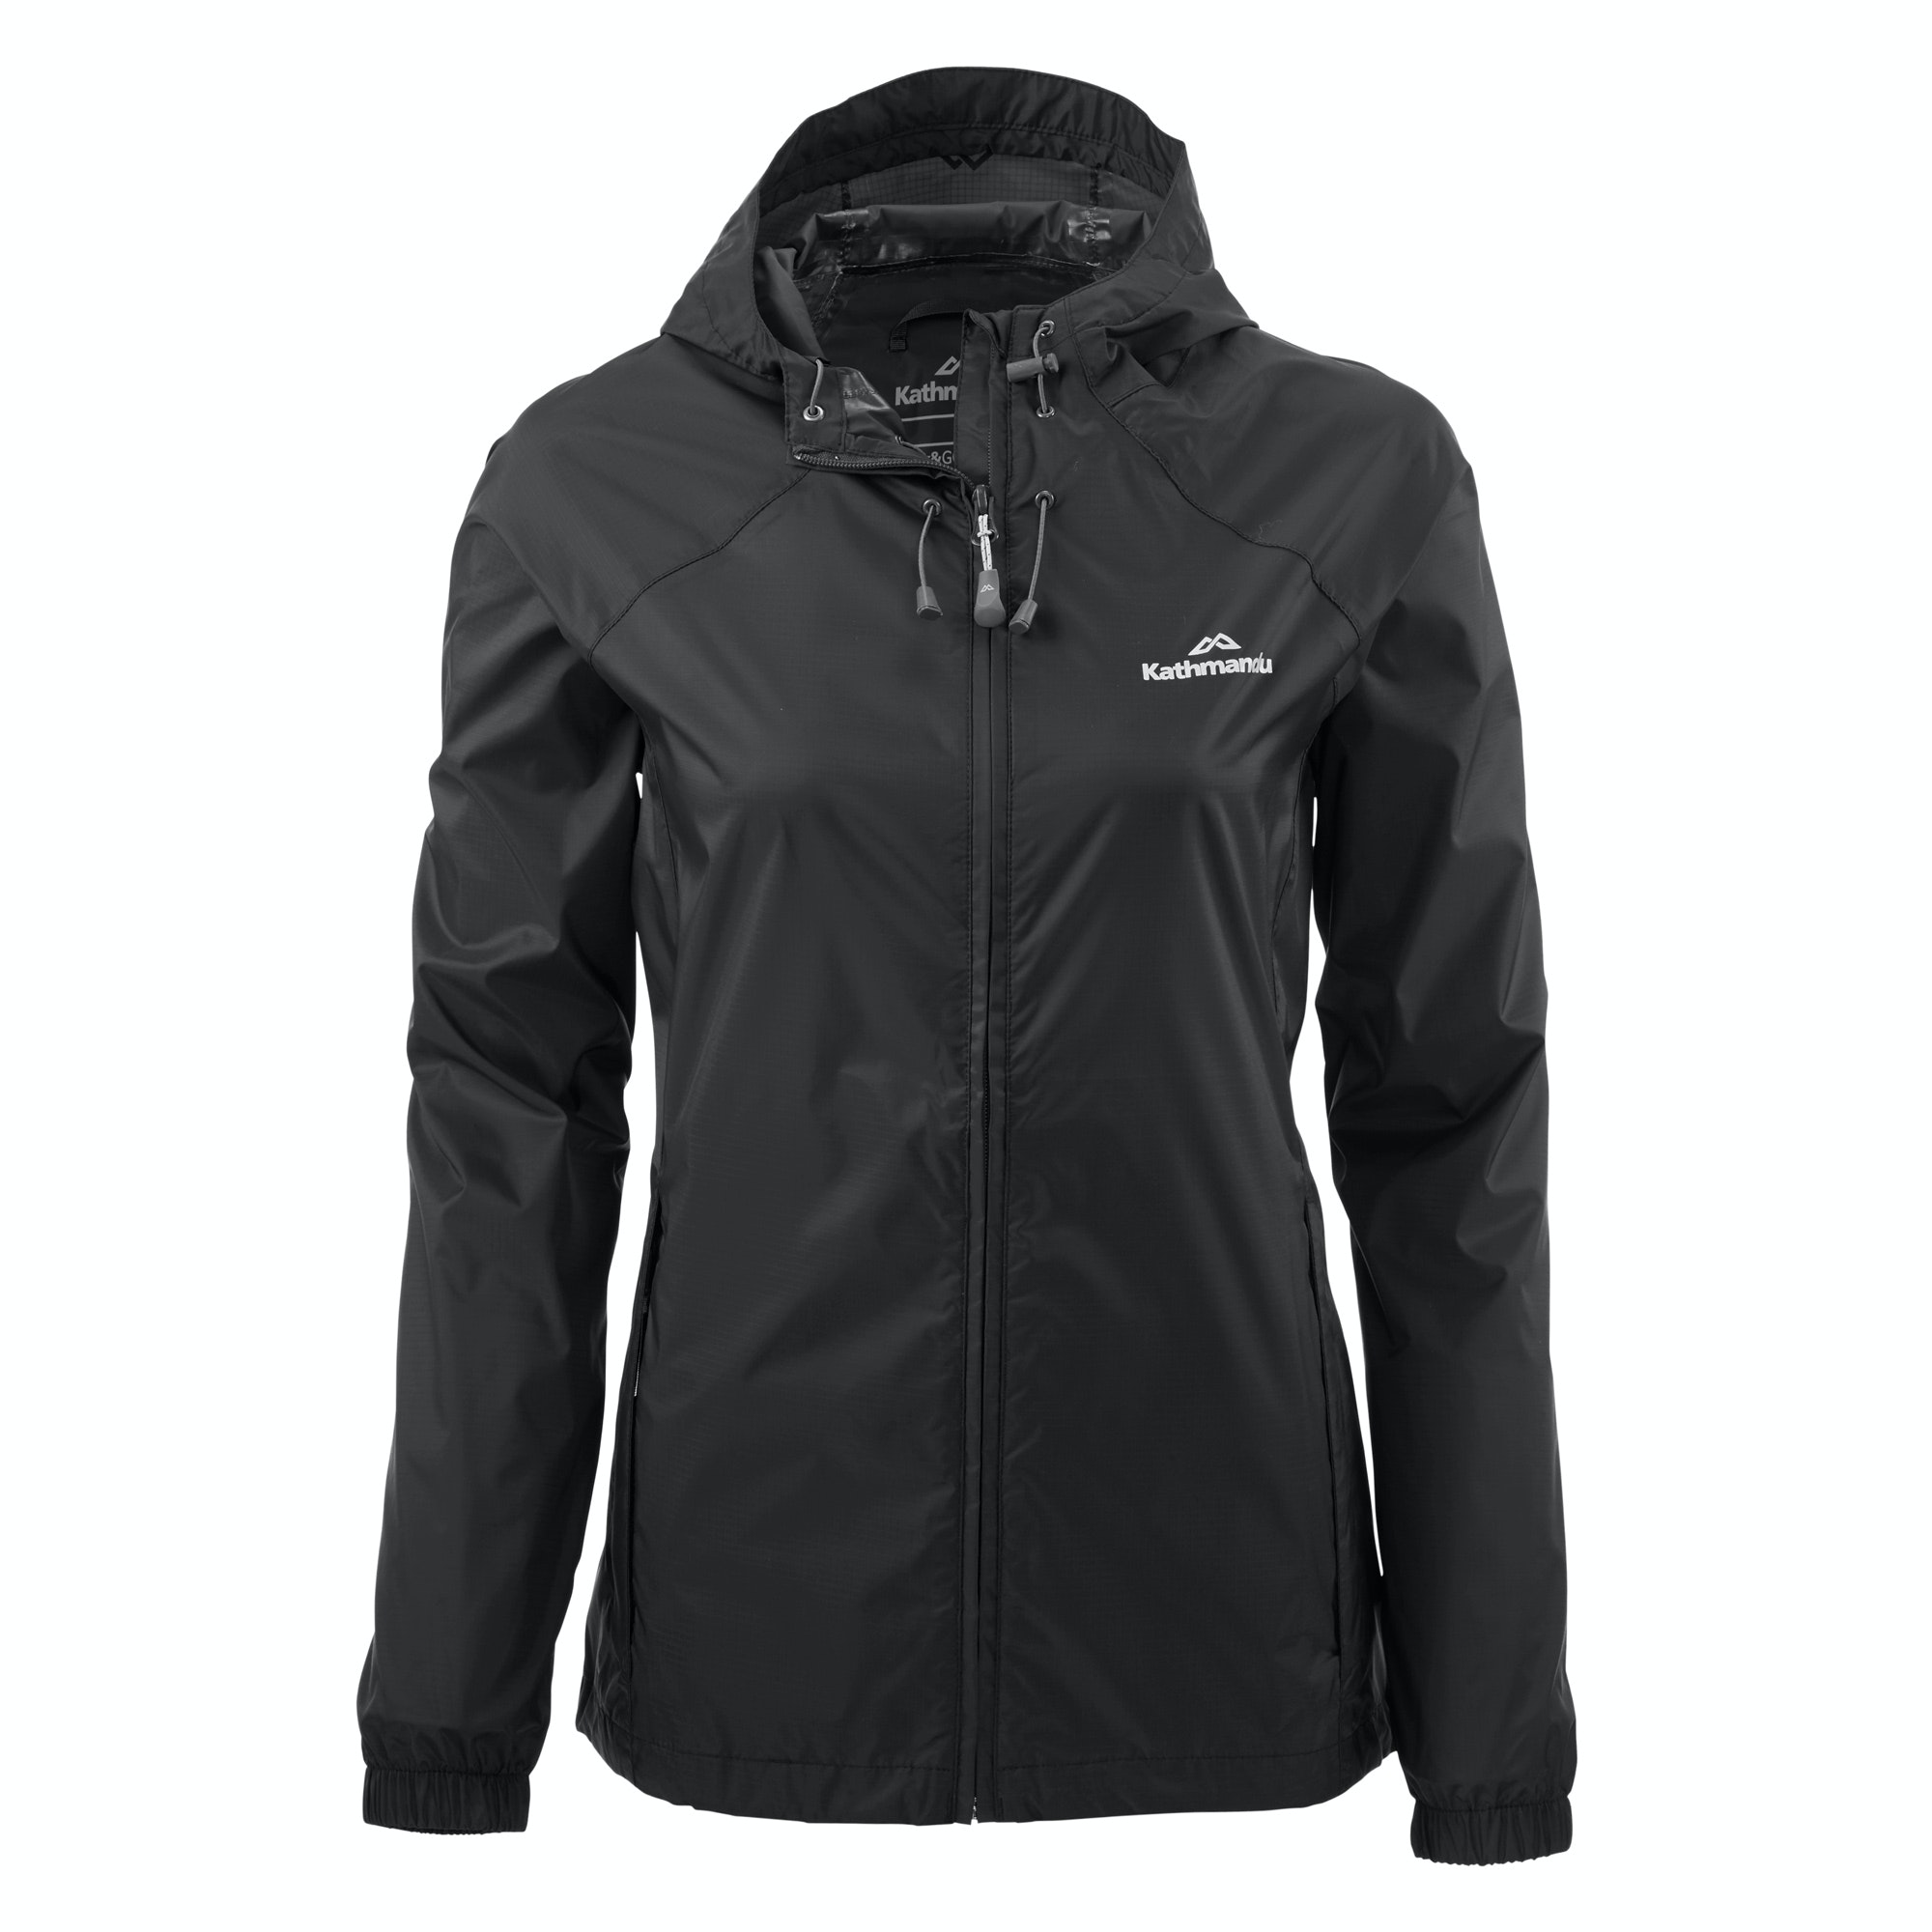 Repel rain while you explore nature's playground with waterproof, breathable rain jackets for women by The North Face in stylish, adventure-ready styles.